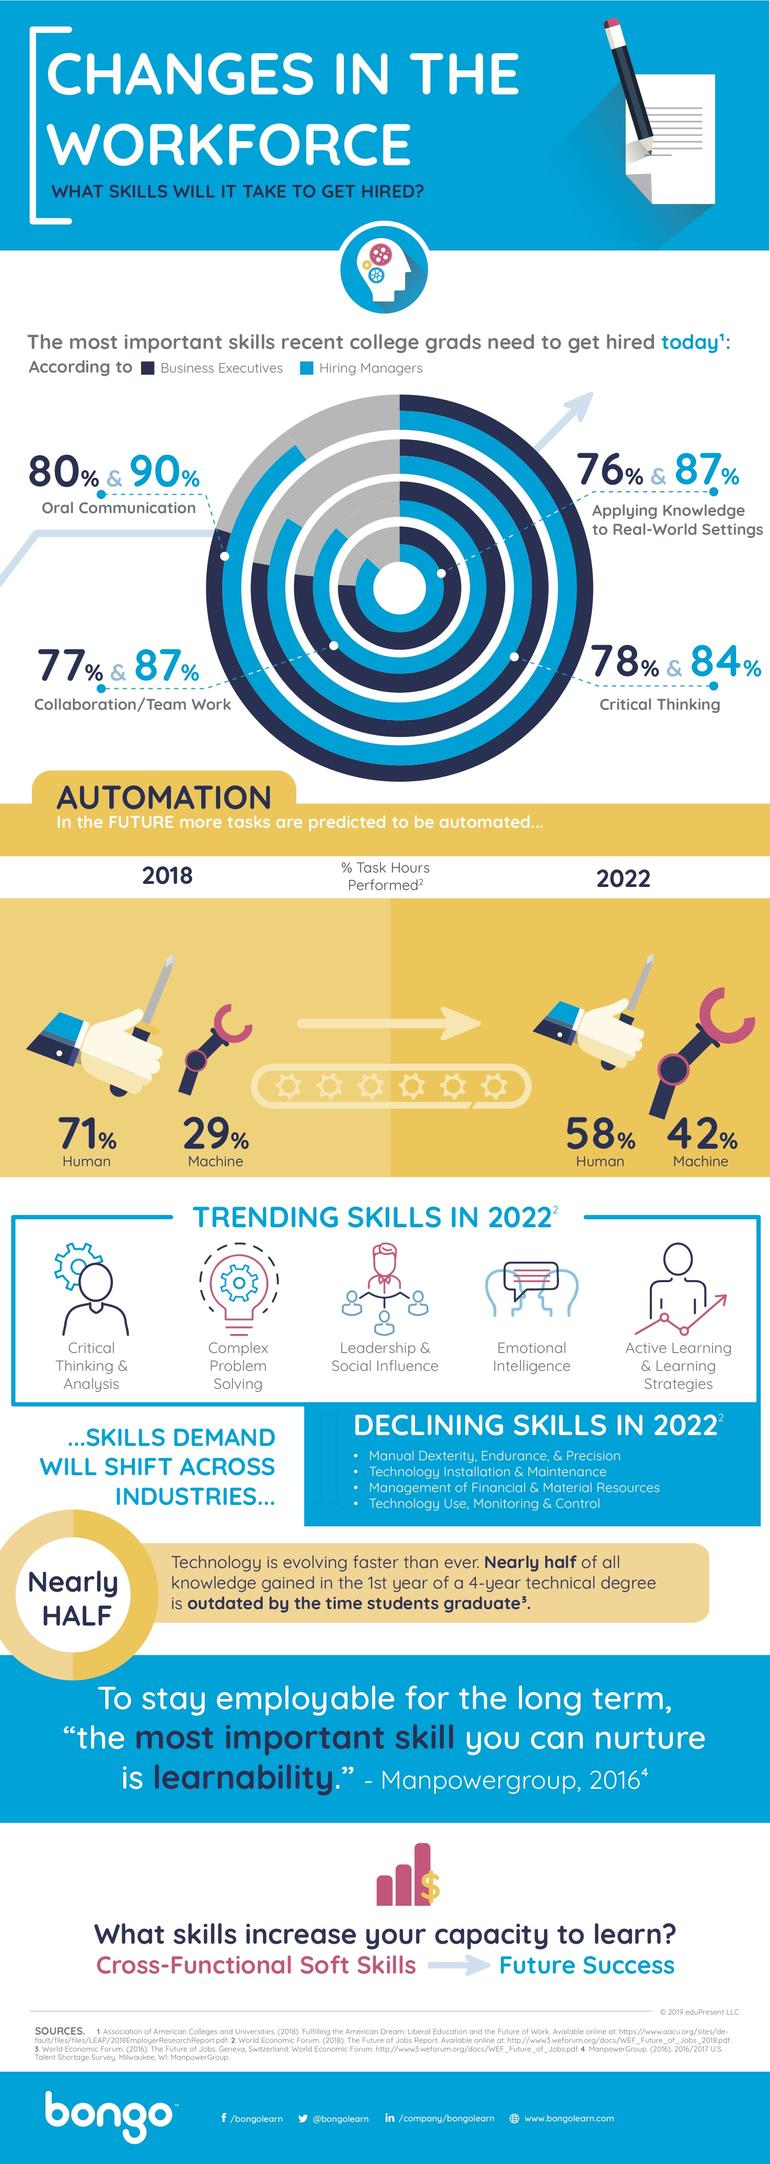 Redefining Skill Sets for Success: What the Future Workforce Needs to Develop - Infographic